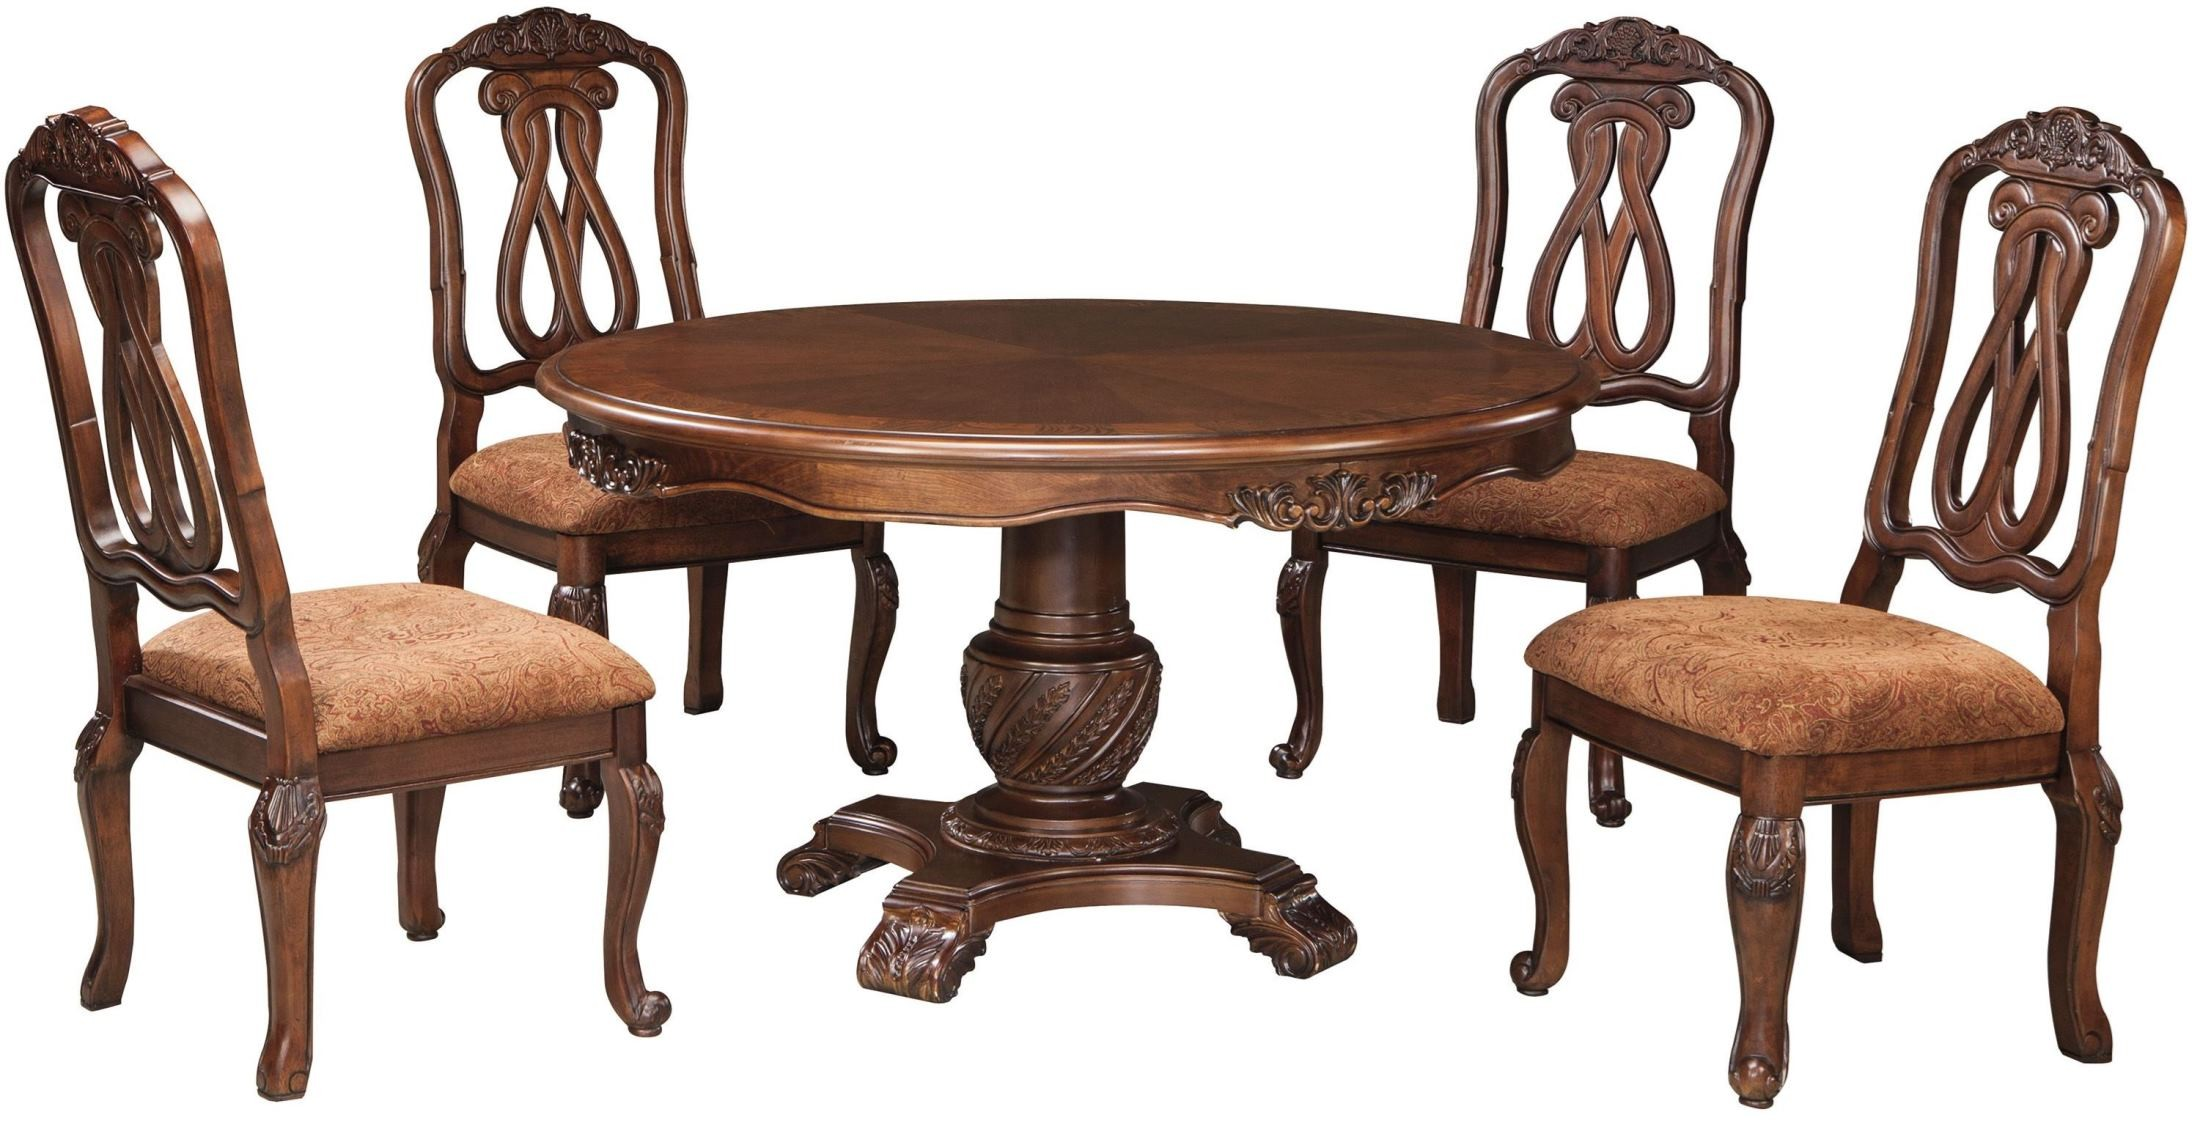 North Shore Round Pedestal Table from Ashley Coleman  : d553 50tb 03 sw from colemanfurniture.com size 2200 x 1123 jpeg 353kB